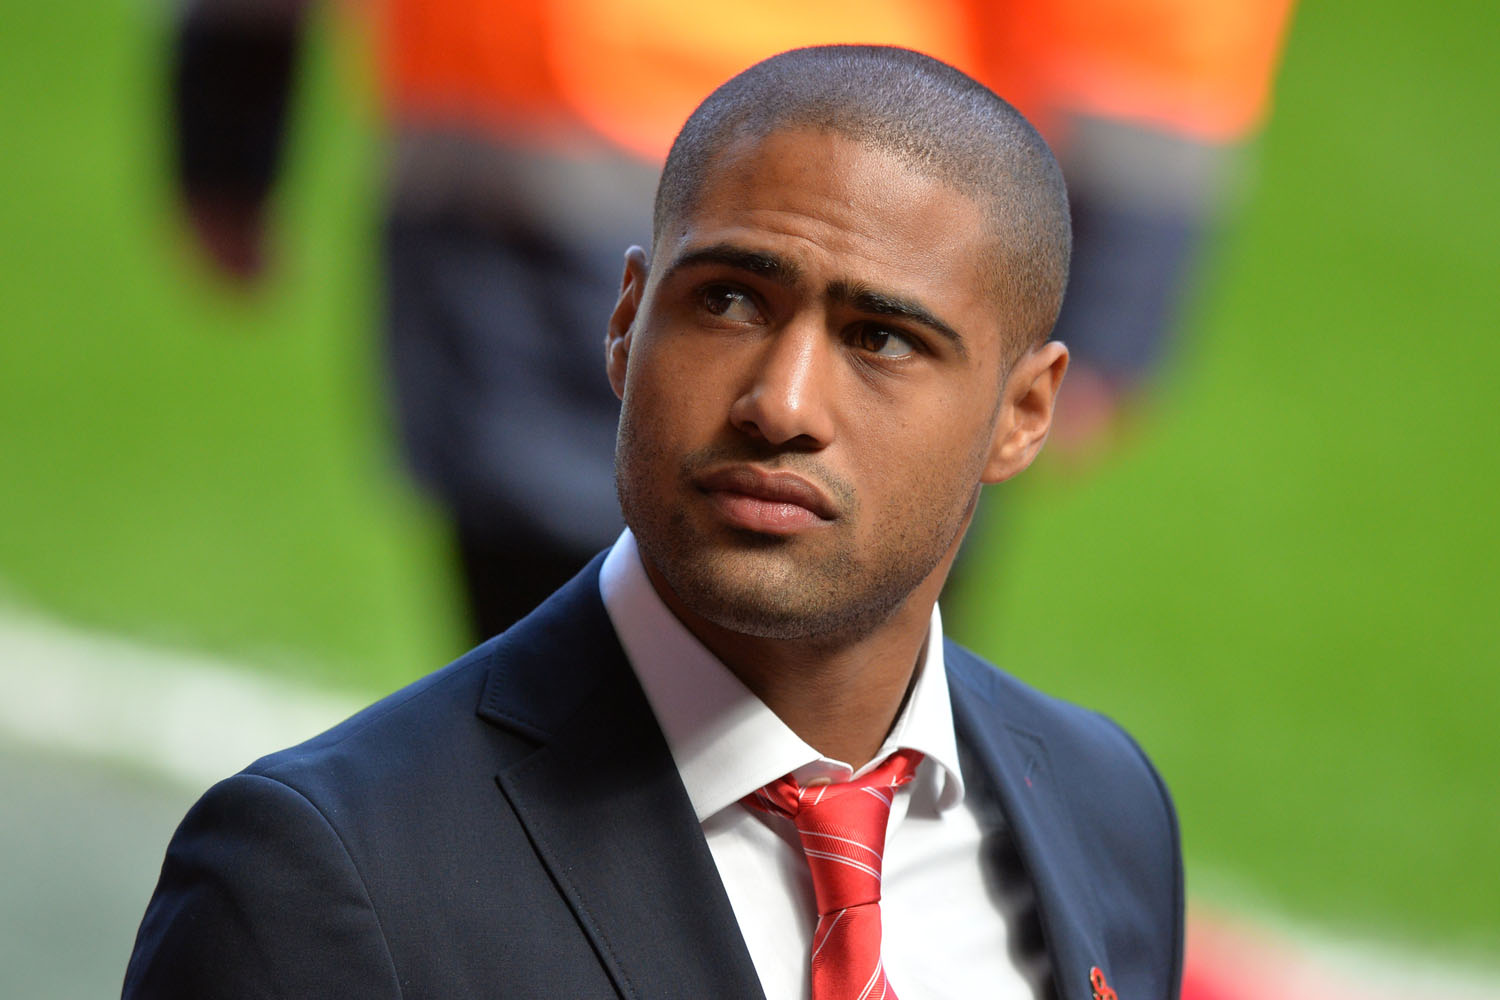 Glen Johnson has played for Chelsea in the past.